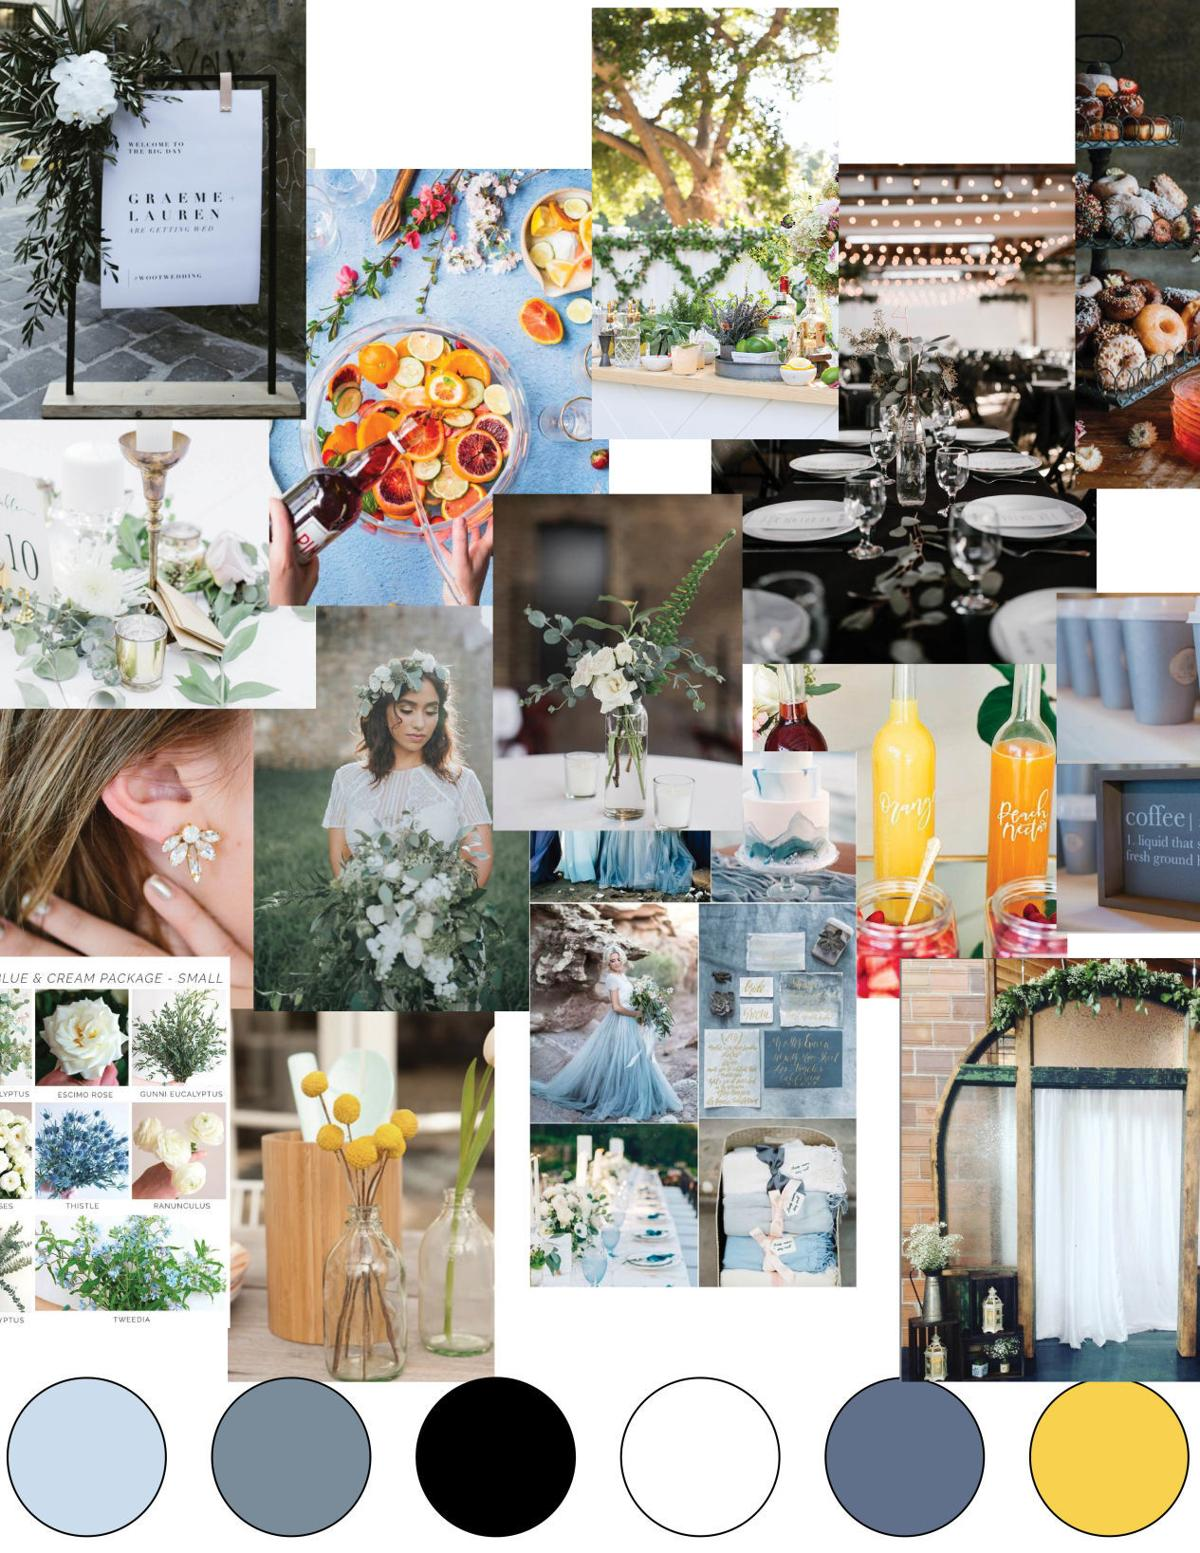 Jordan's wedding mood board